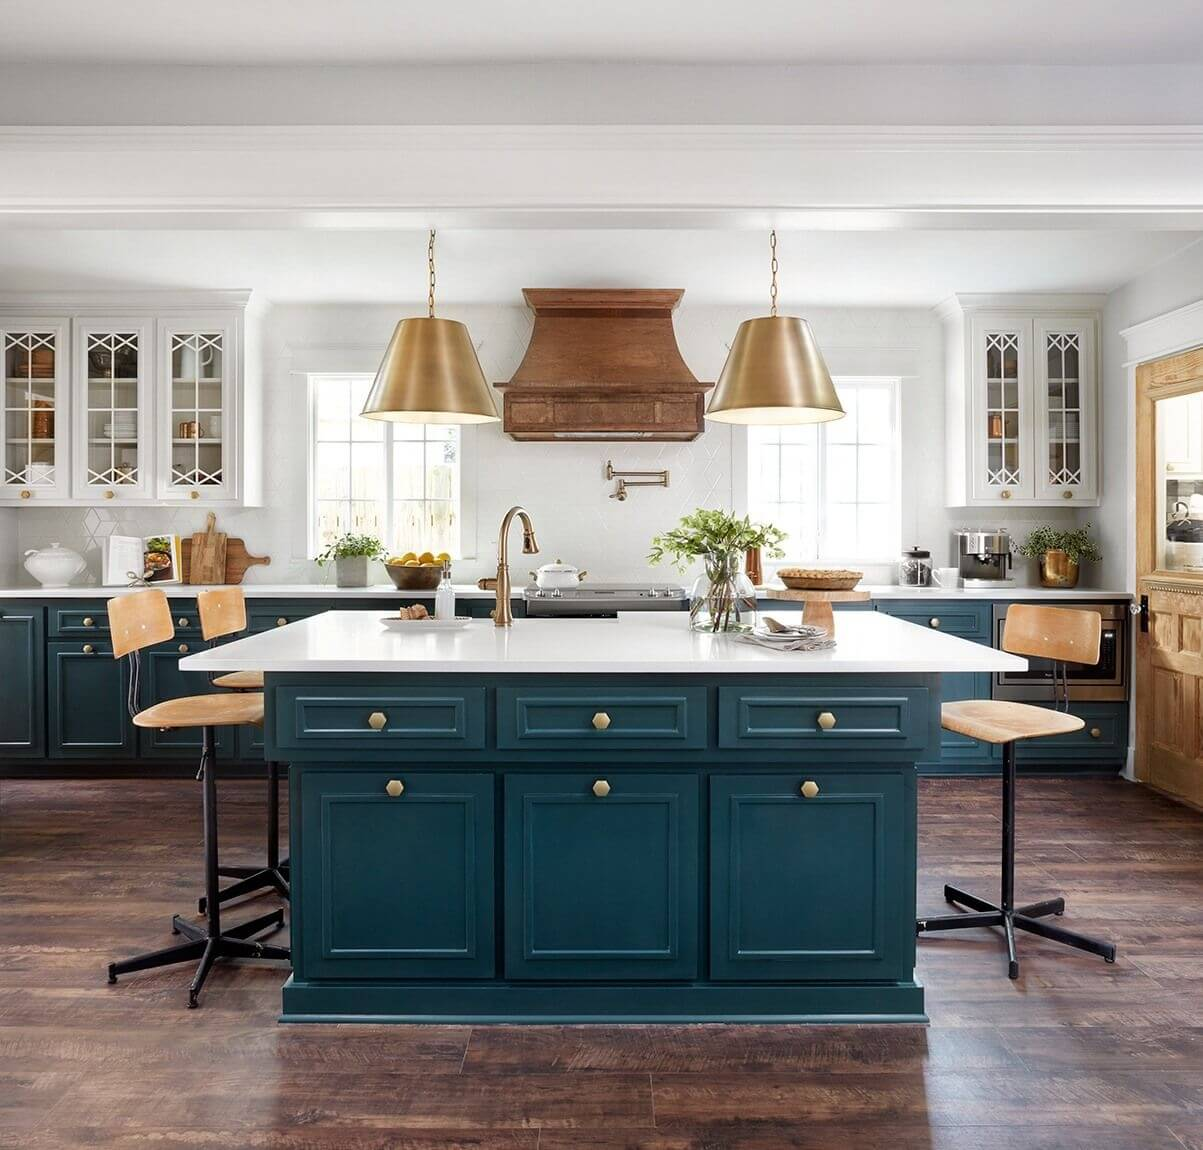 15 fixer upper kitchen designs to check the on kitchen design remodeling ideas better homes gardens id=22685